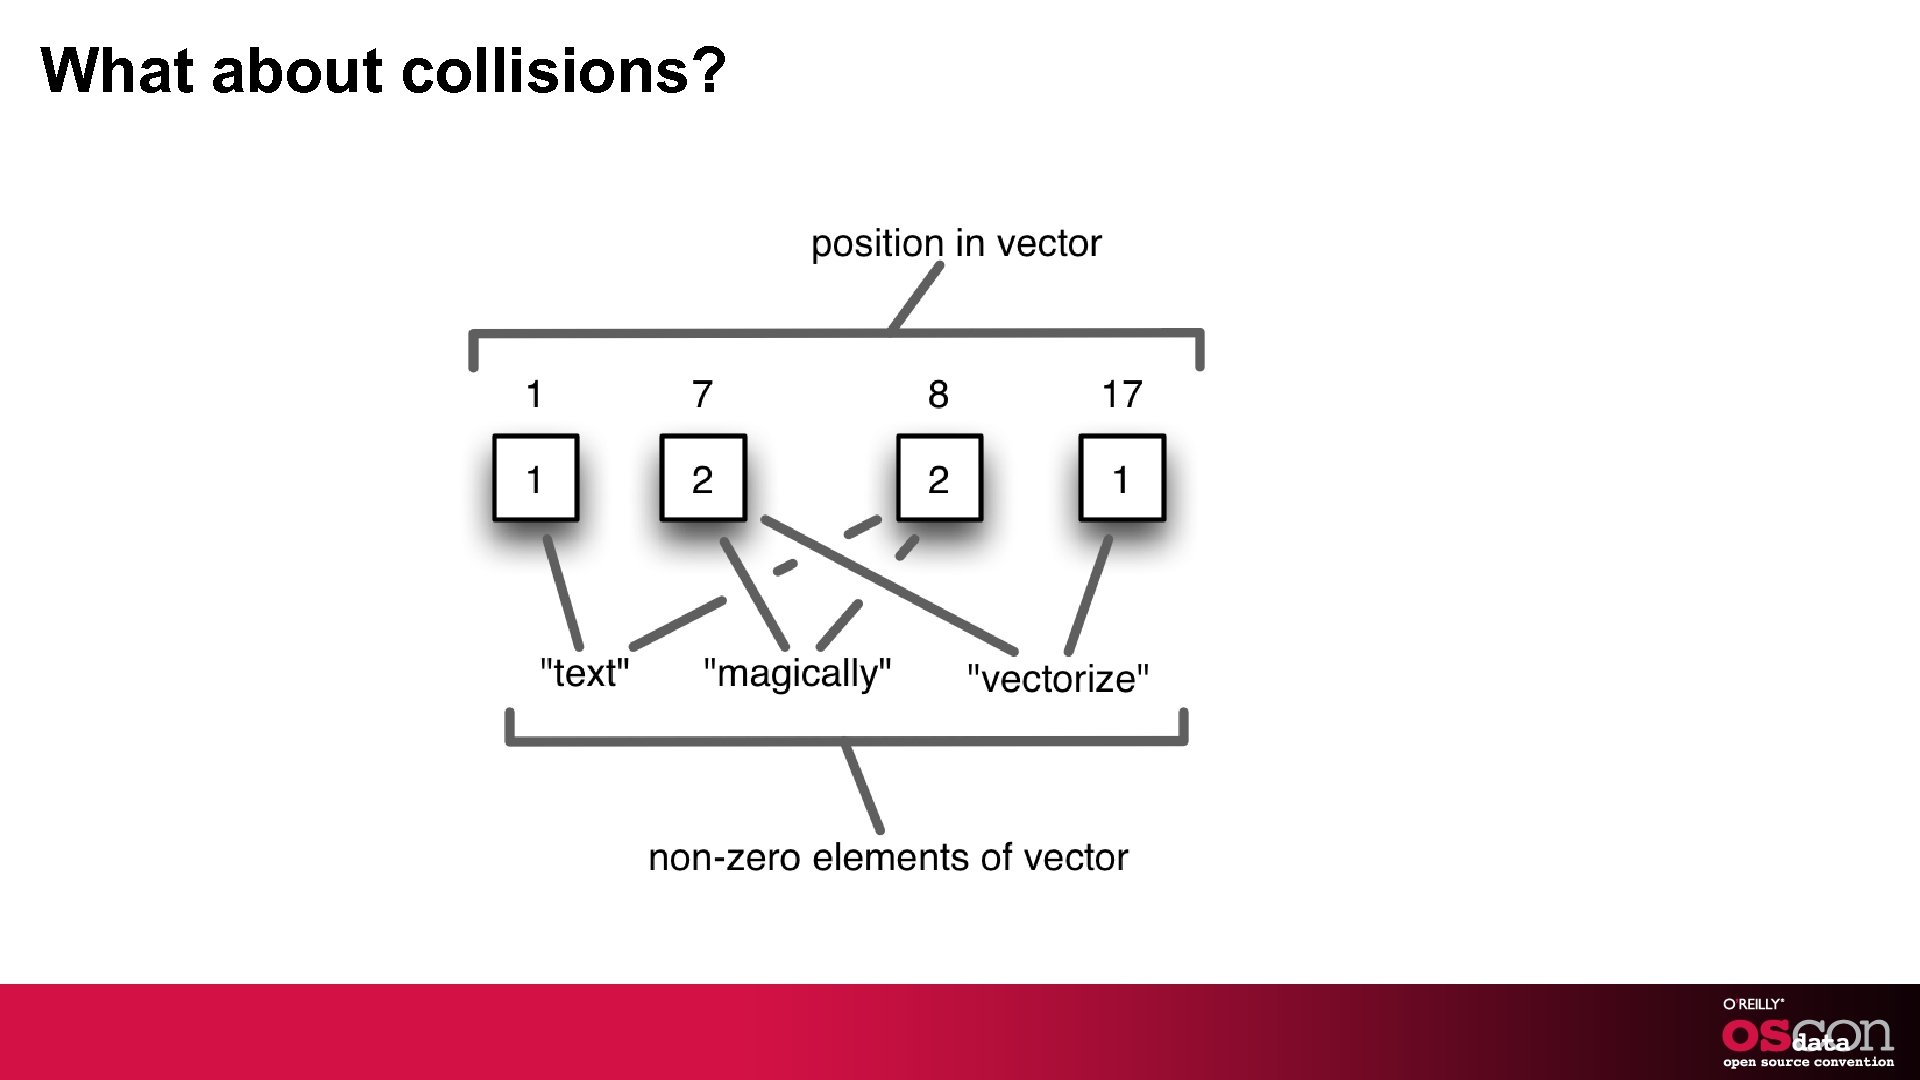 What about collisions?